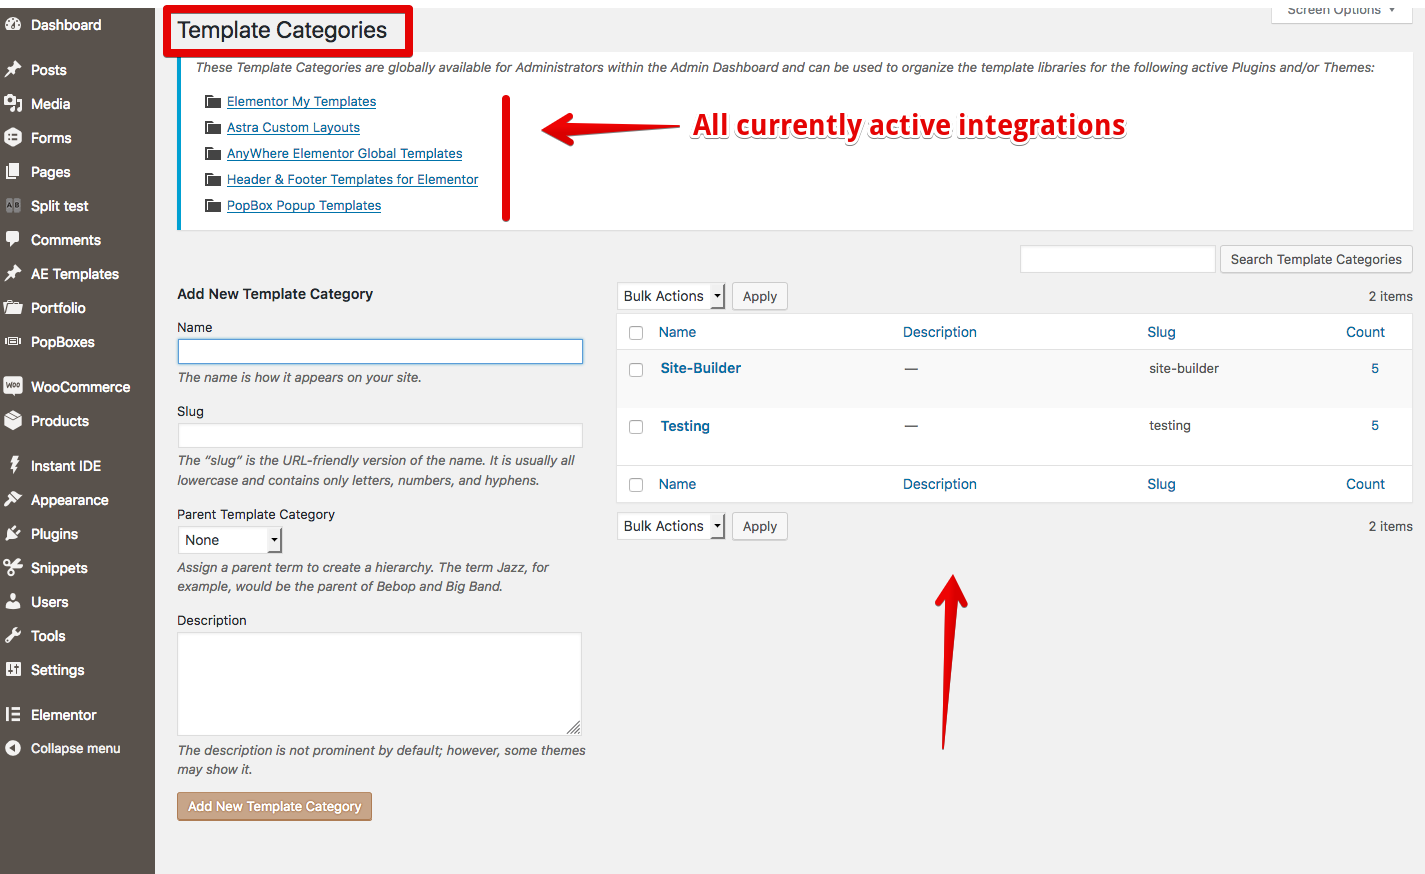 List of Template Categories - plus help info about all current active integrations